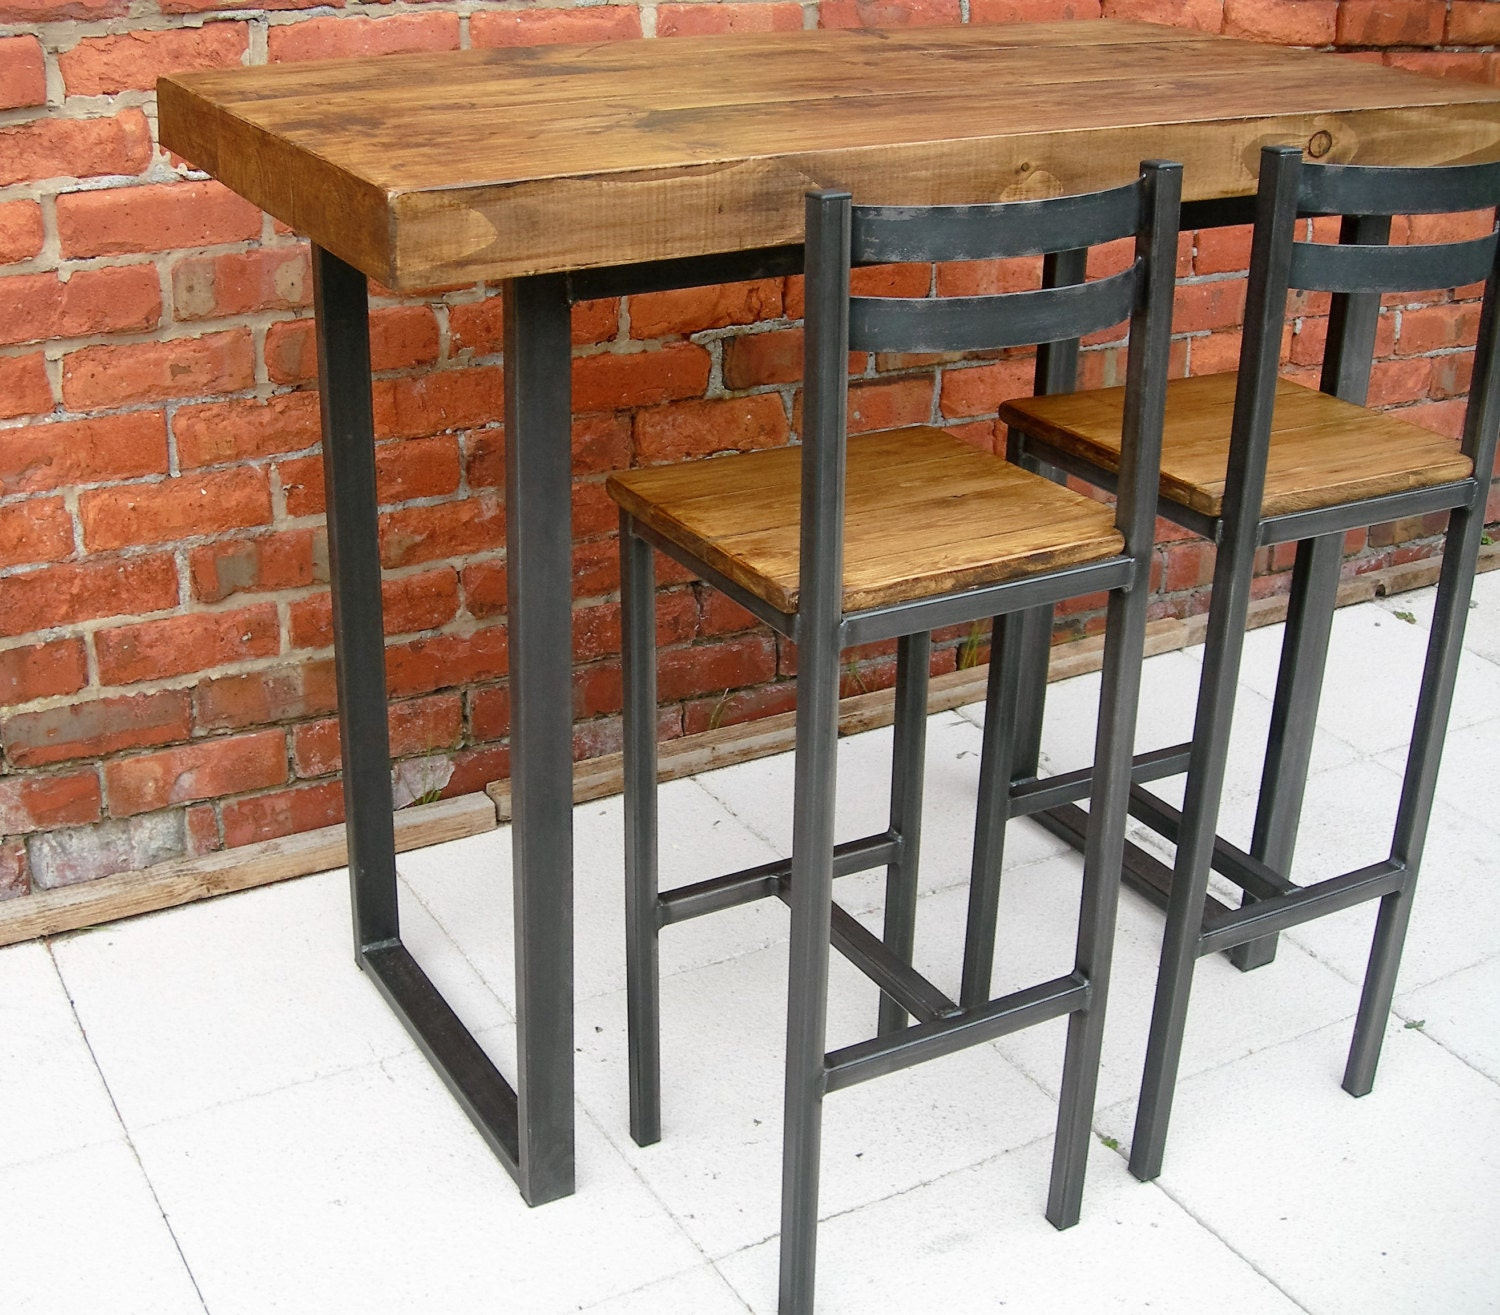 Bar Stools And Tables: Breakfast Bar Table & Bar Stools Rustic Industrial Bar Table